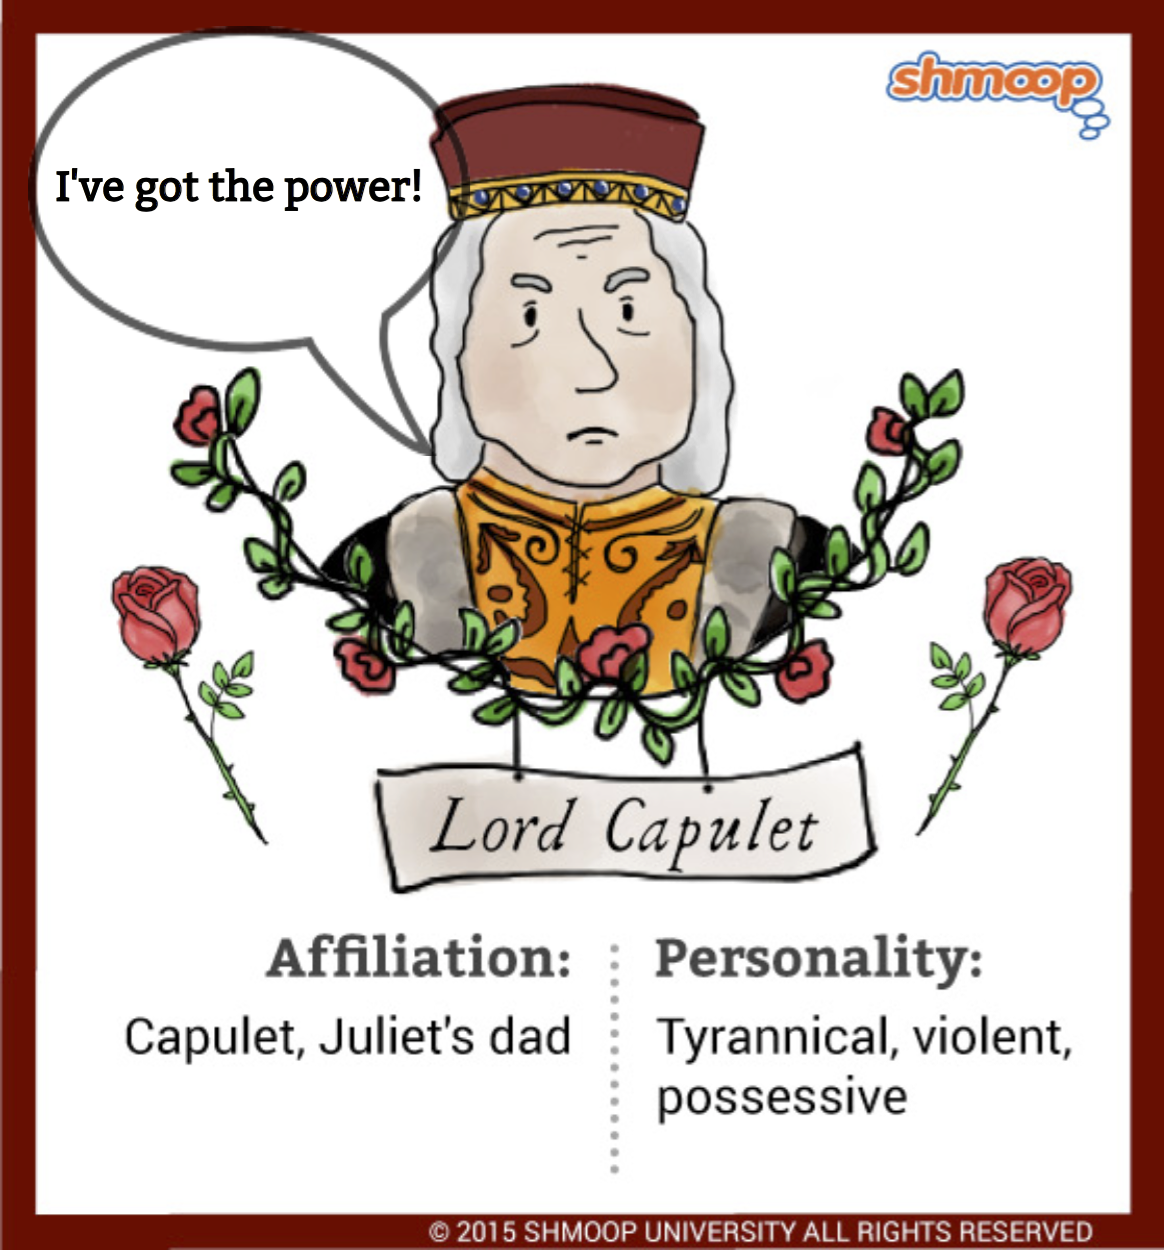 lord capulet character traits